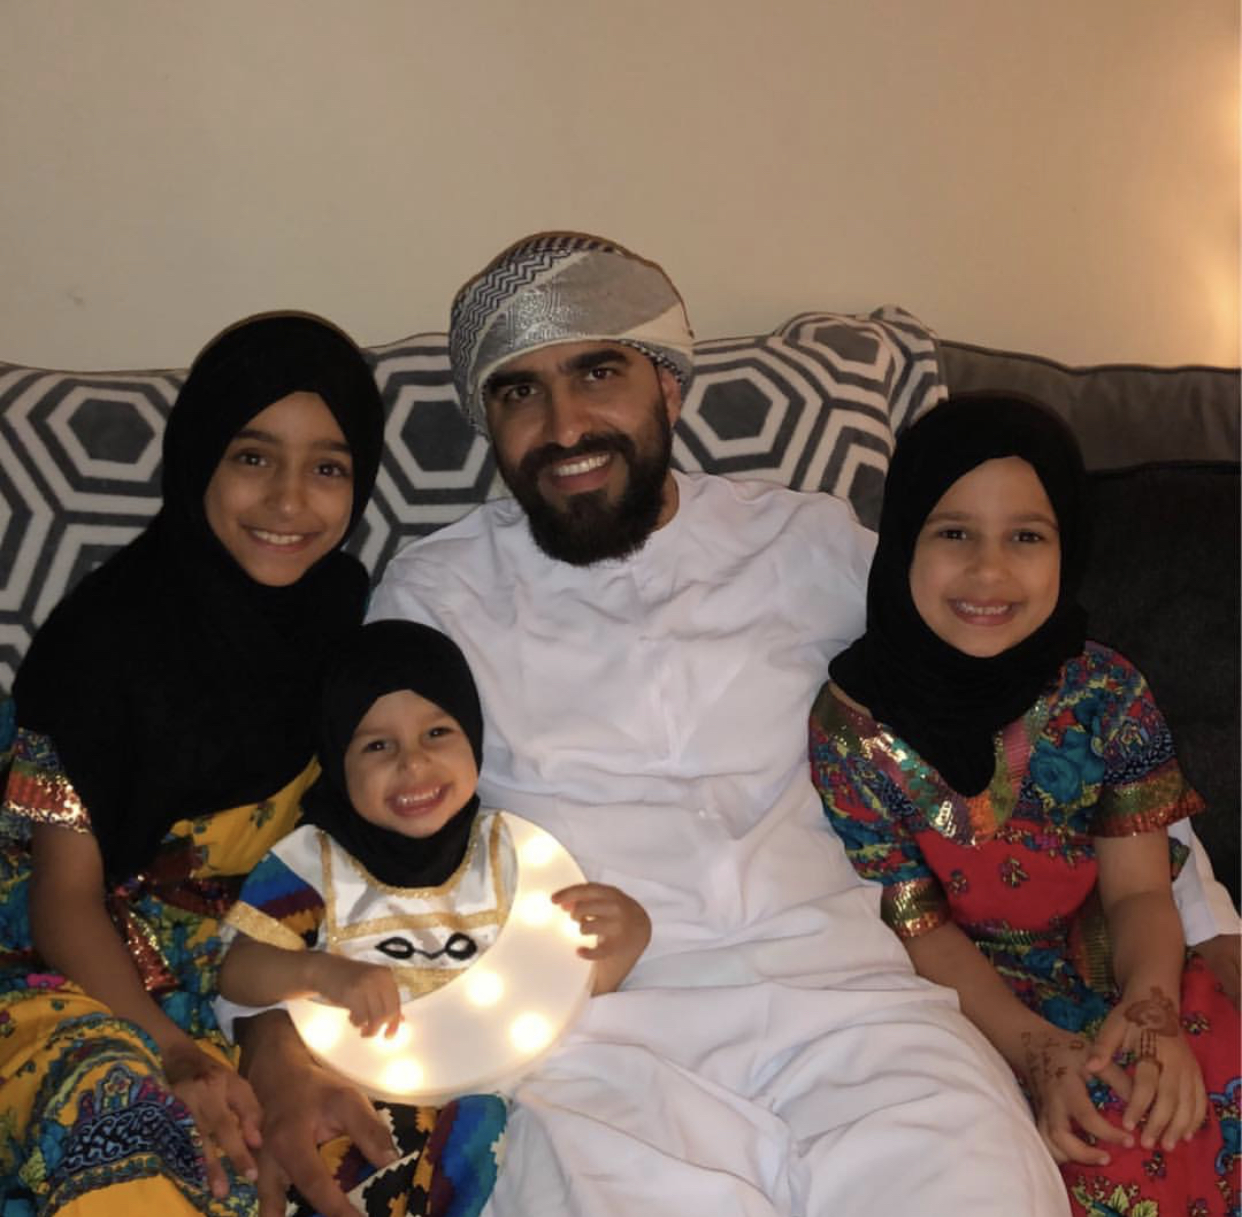 Junior Zayed pictured with his daughters, who decided to dress up, including scarves, during Ramadan.  Photo Credit: Junior Zayed